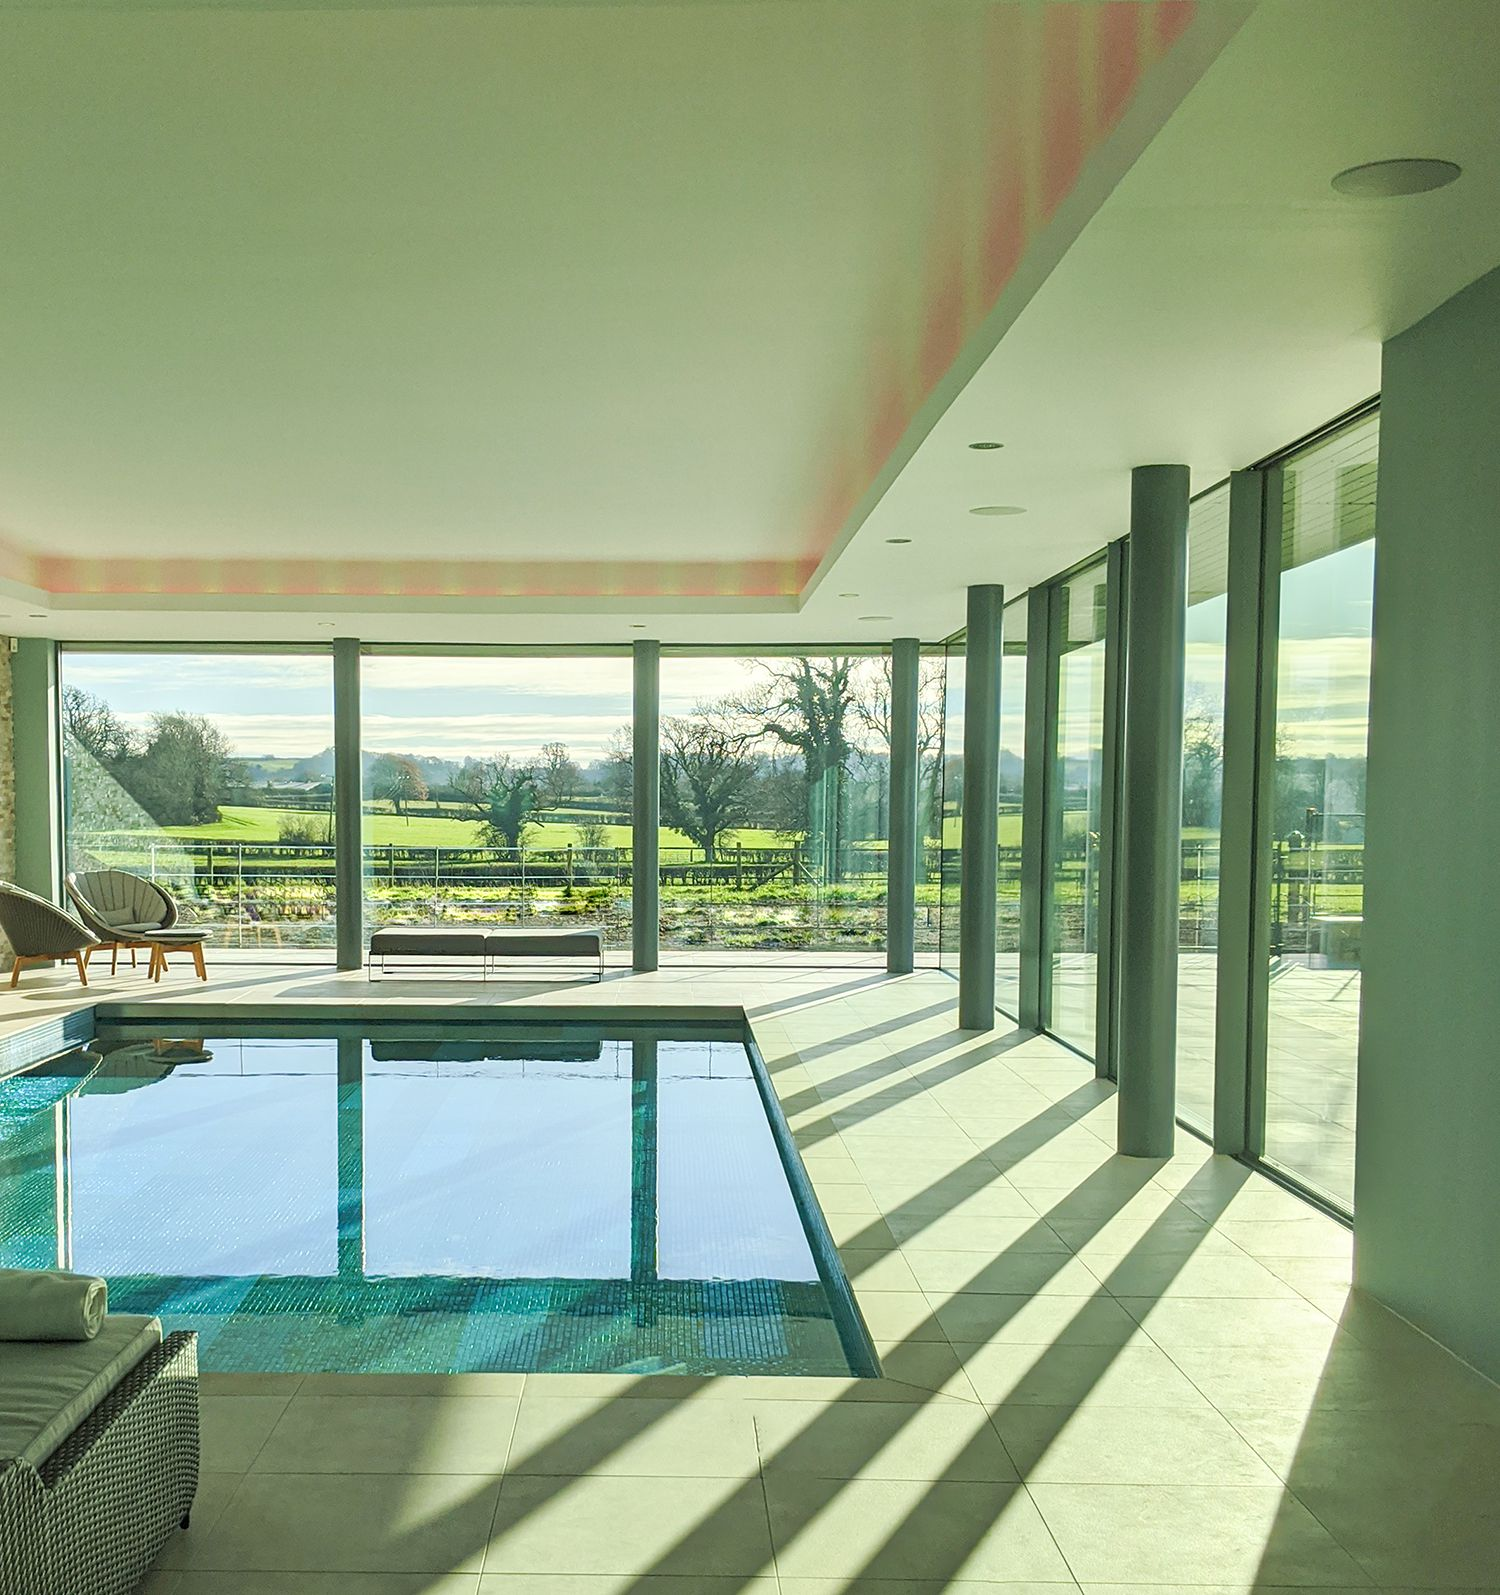 A photo looking down the length of the pool, with the sun streaming in through the glazing.